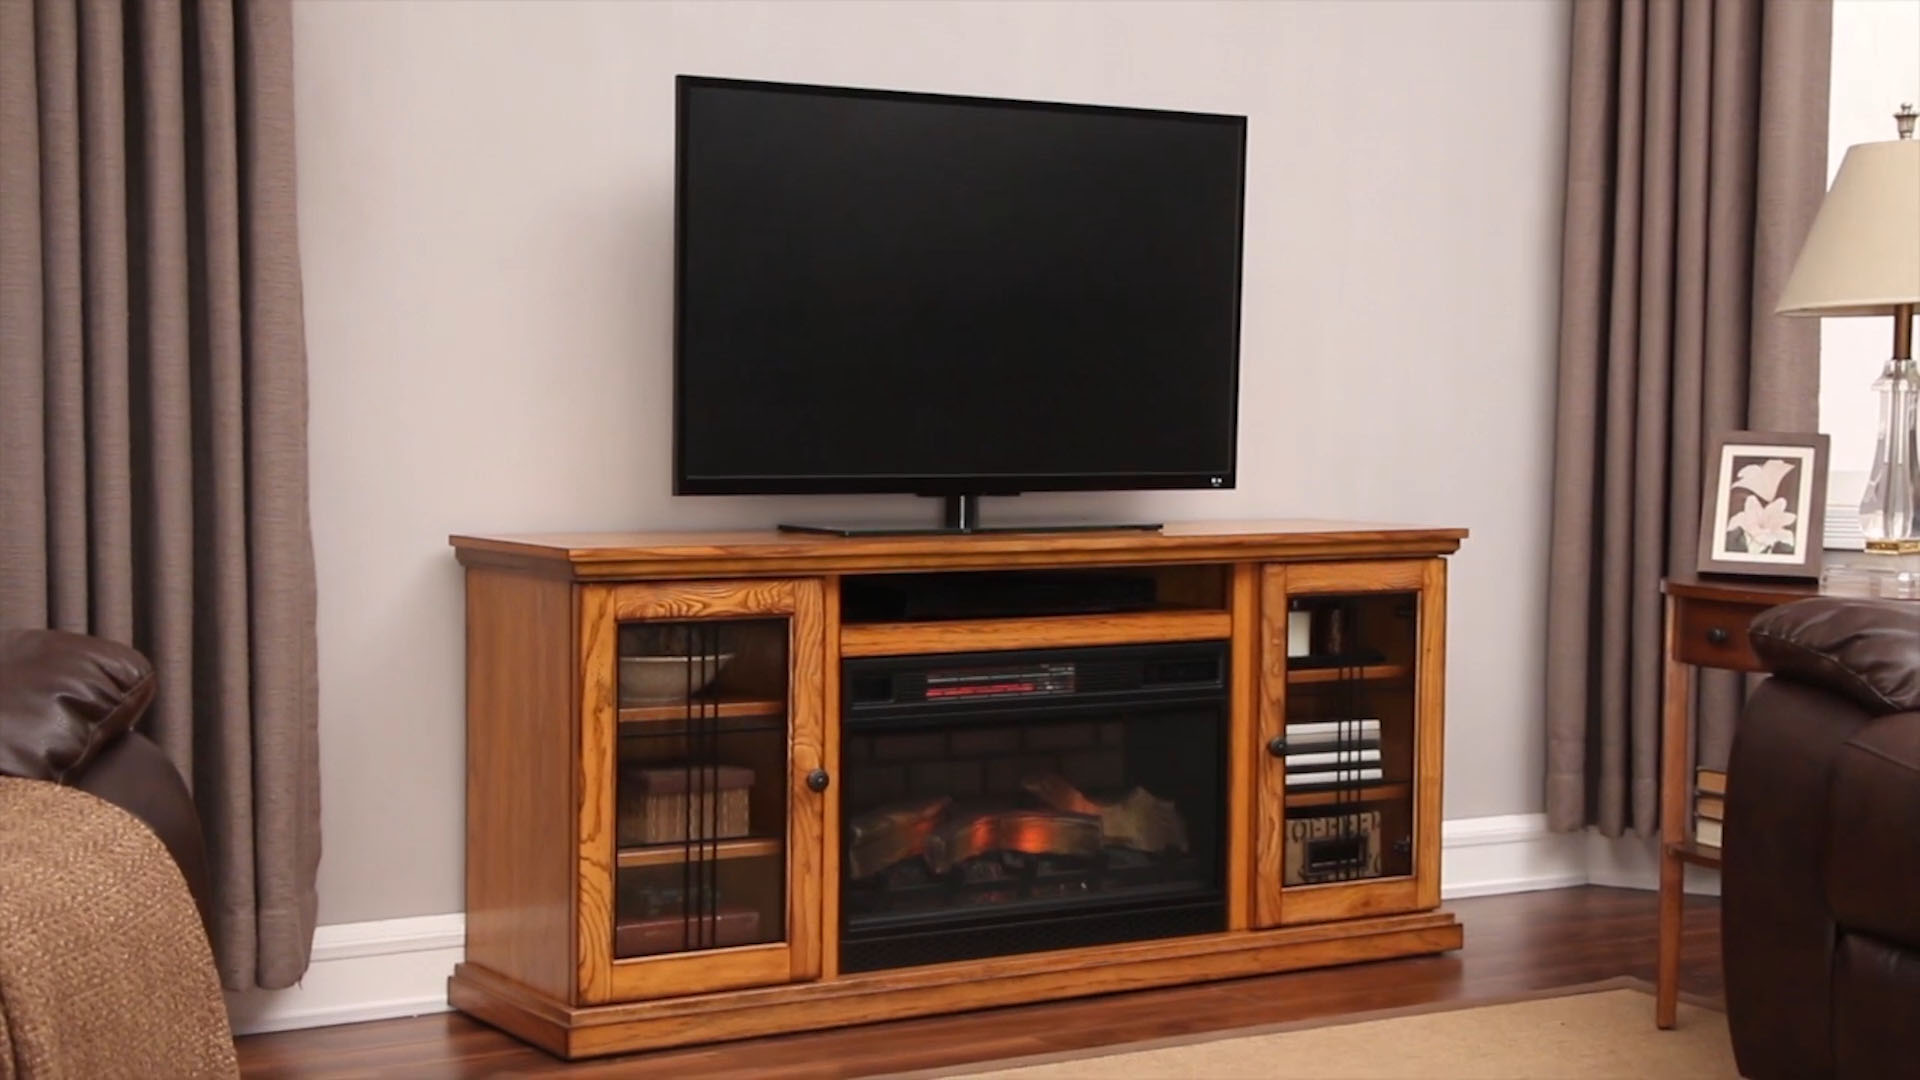 heater inserts tv insert electric x faux fireplace com thelazercast stand fireplaces menards